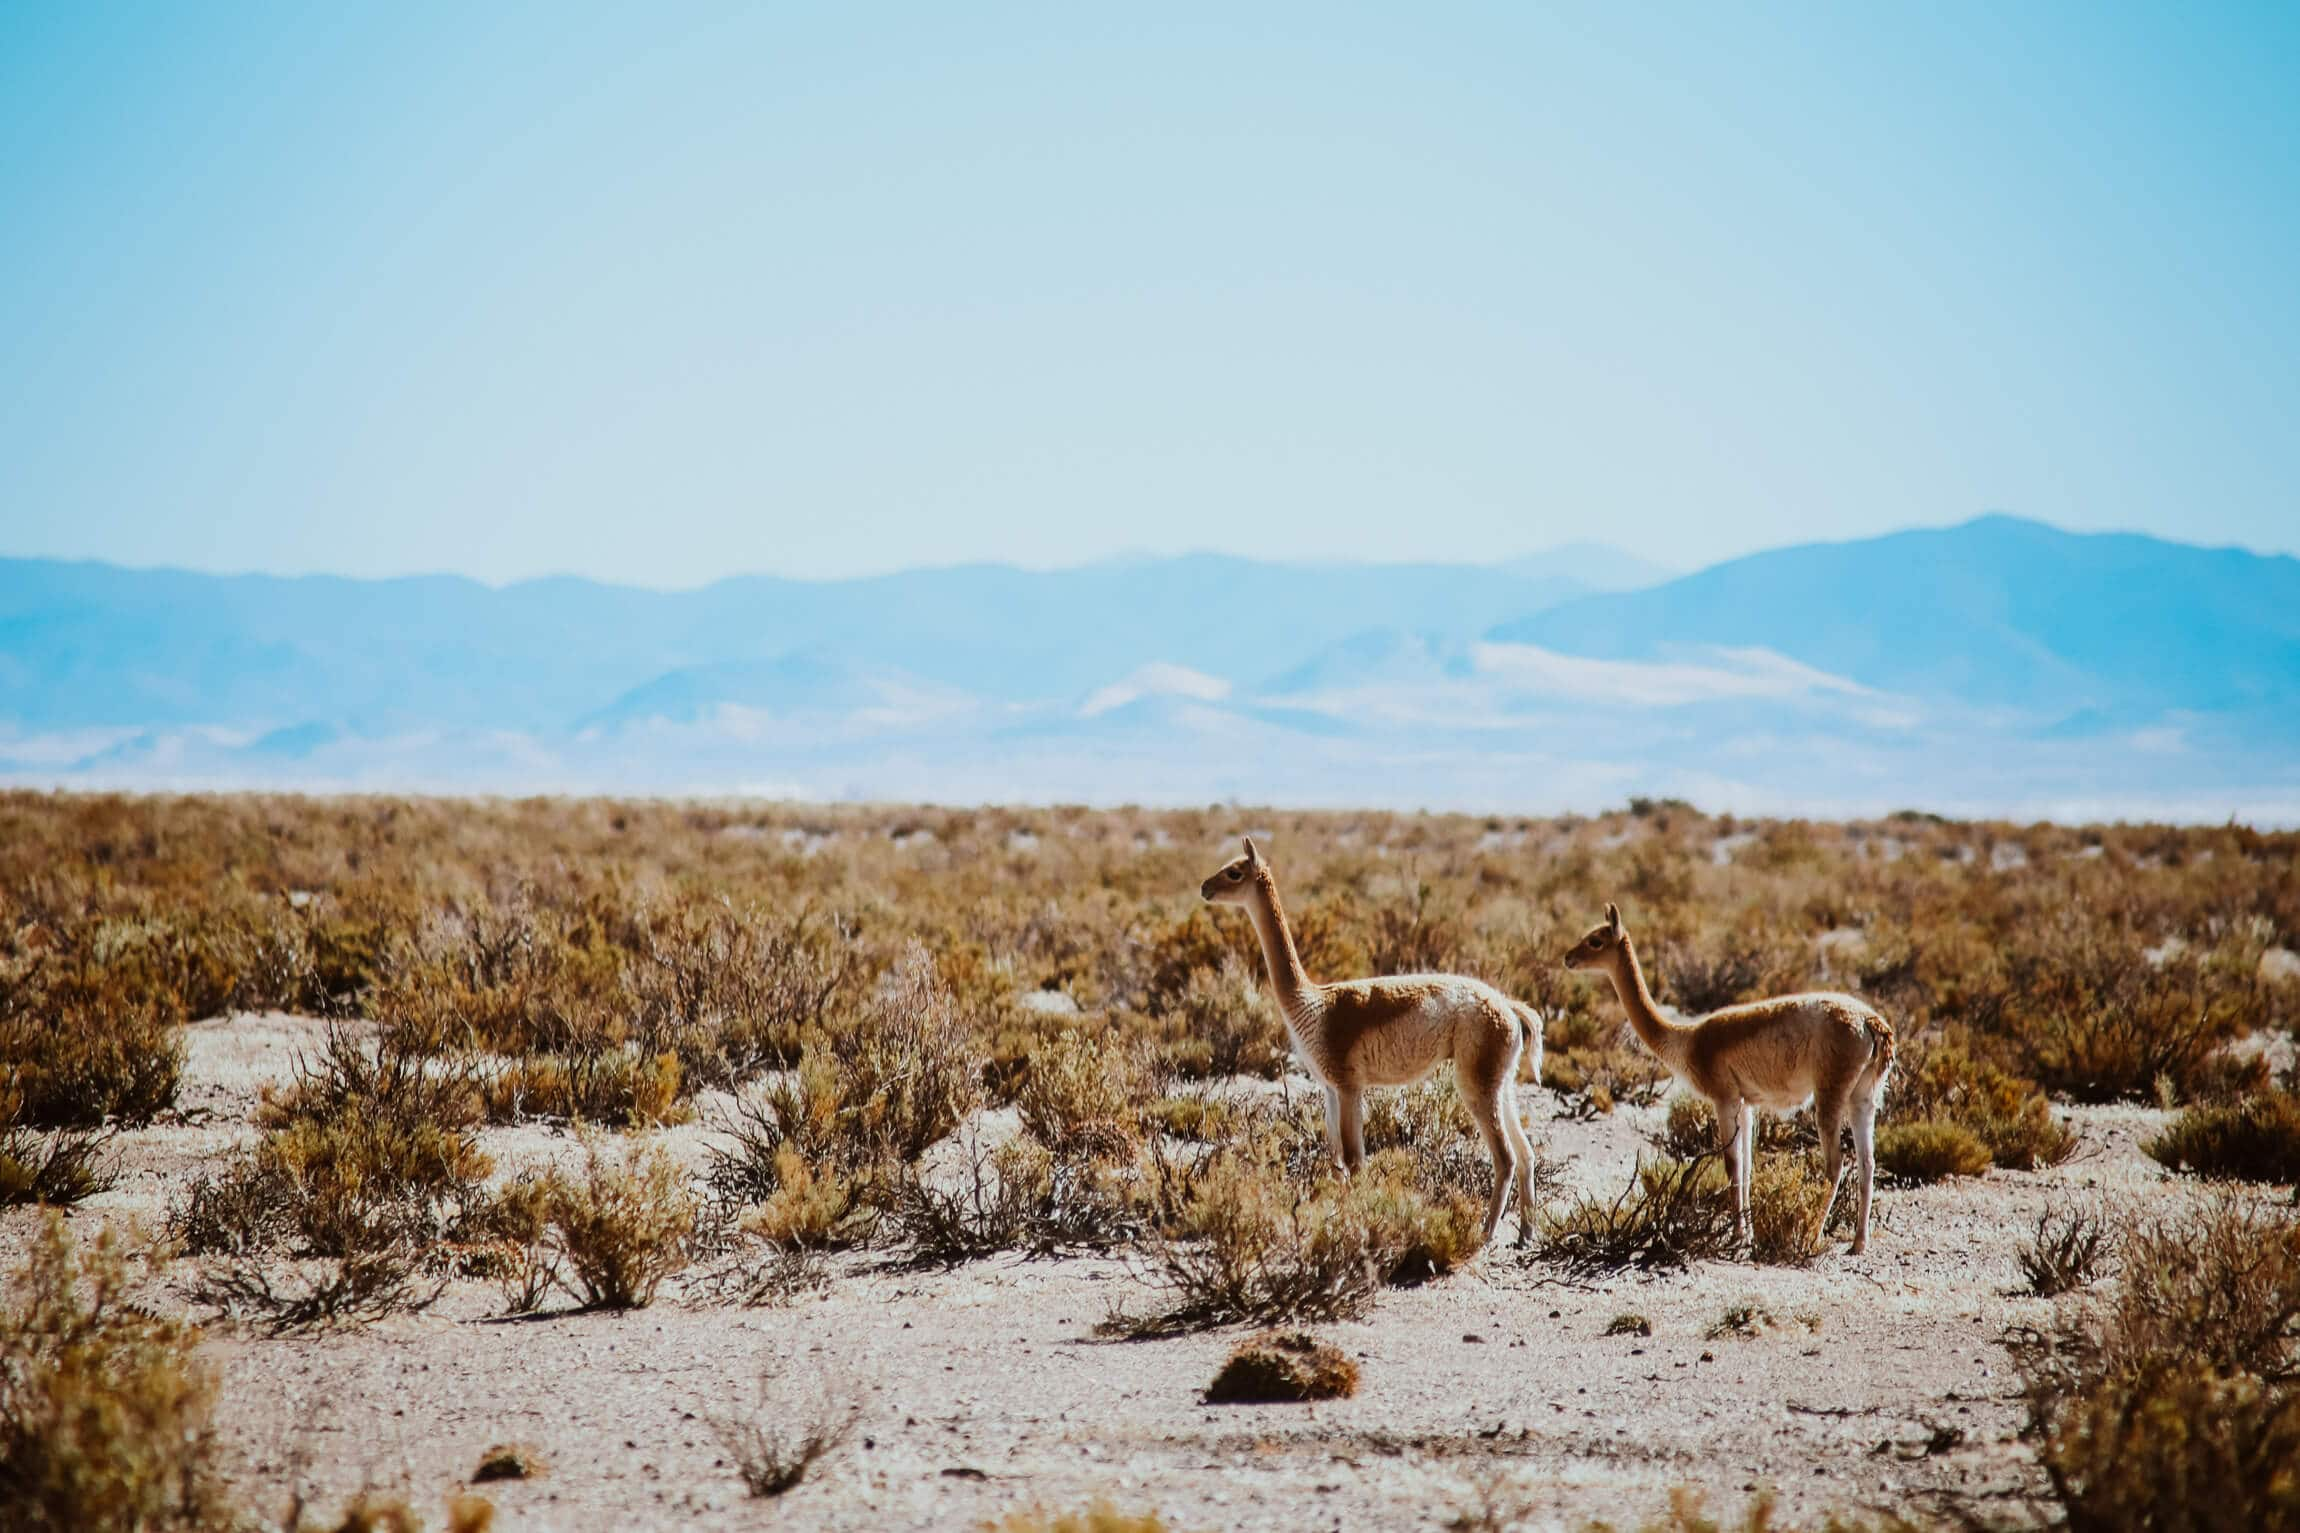 Two vicunas on the desert steppe